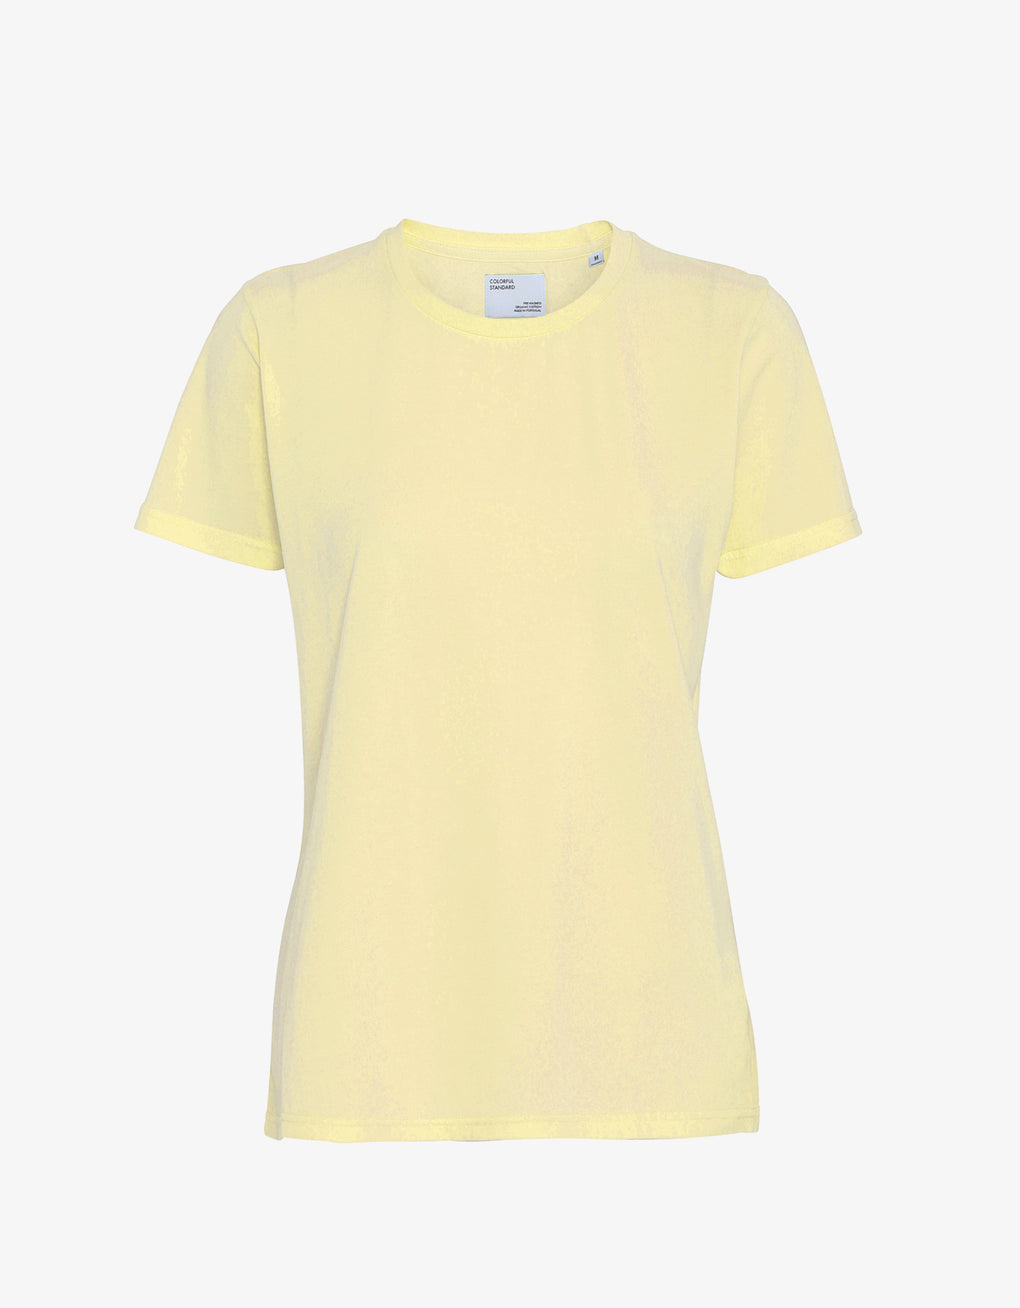 Colorful Standard Women Light Organic Tee Women T-shirt Soft Yellow